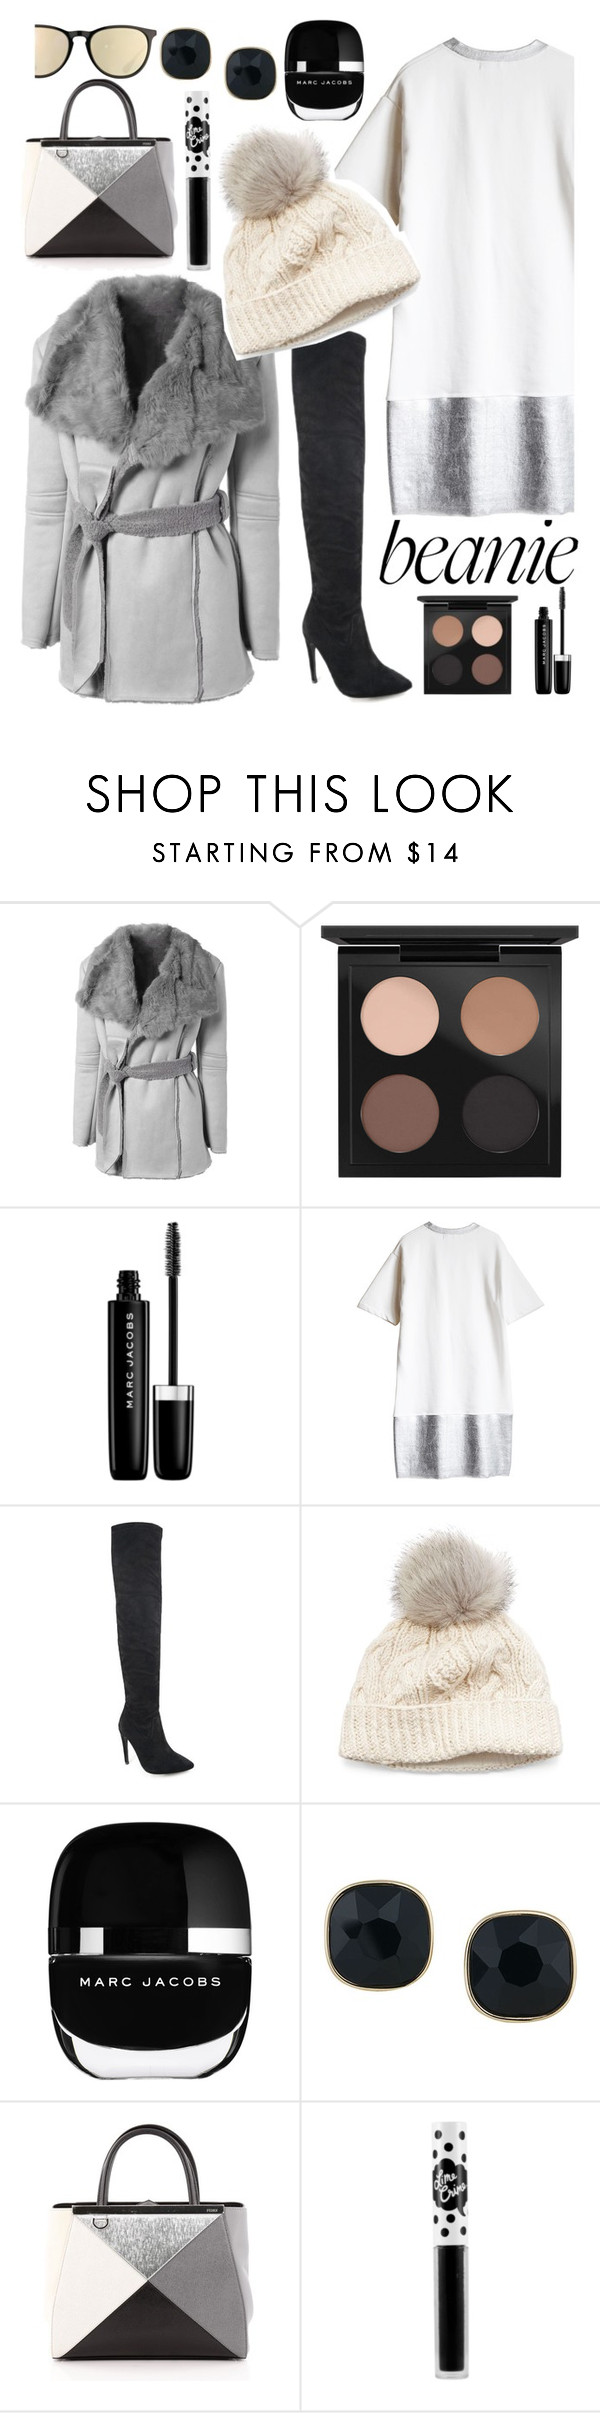 """""""7."""" by vinylrekords ❤ liked on Polyvore featuring MAC Cosmetics, Marc Jacobs, SIJJL, ABS by Allen Schwartz, Fendi, Lime Crime and Ray-Ban"""